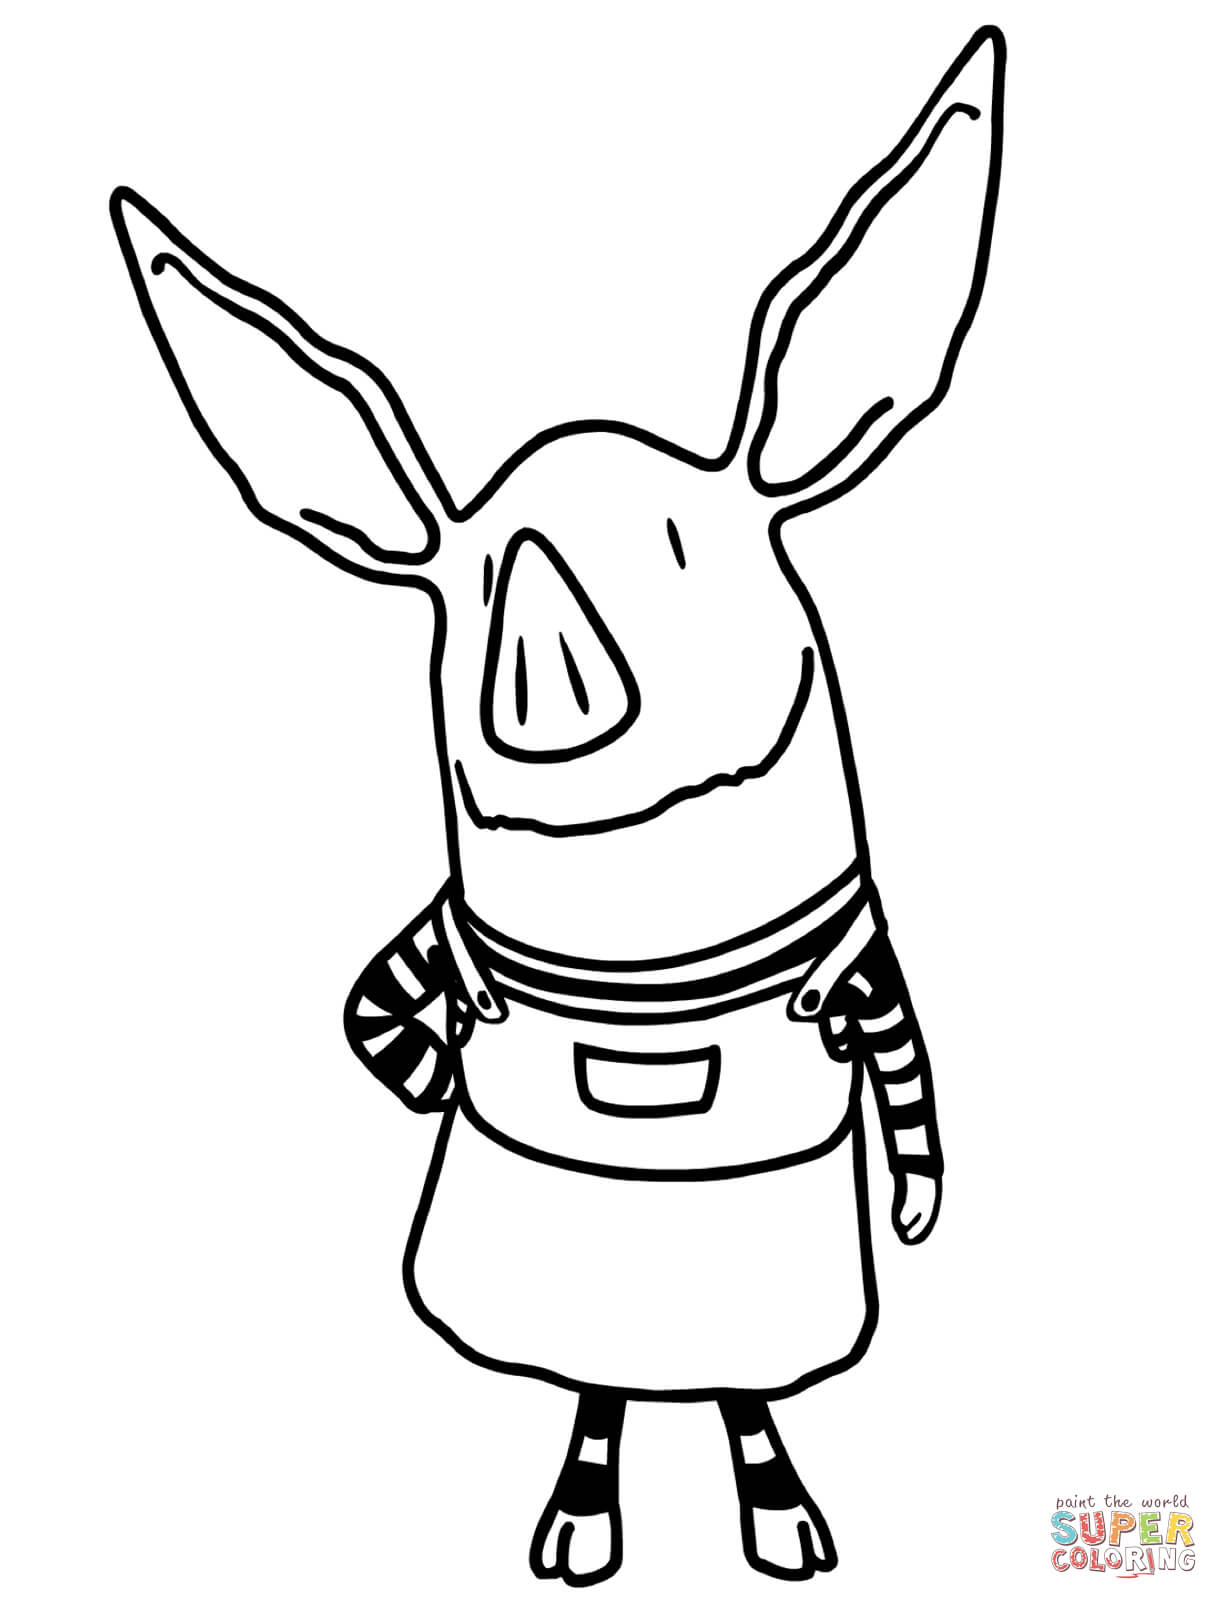 olivia coloring pages olivia the pig coloring page coloring home coloring pages olivia